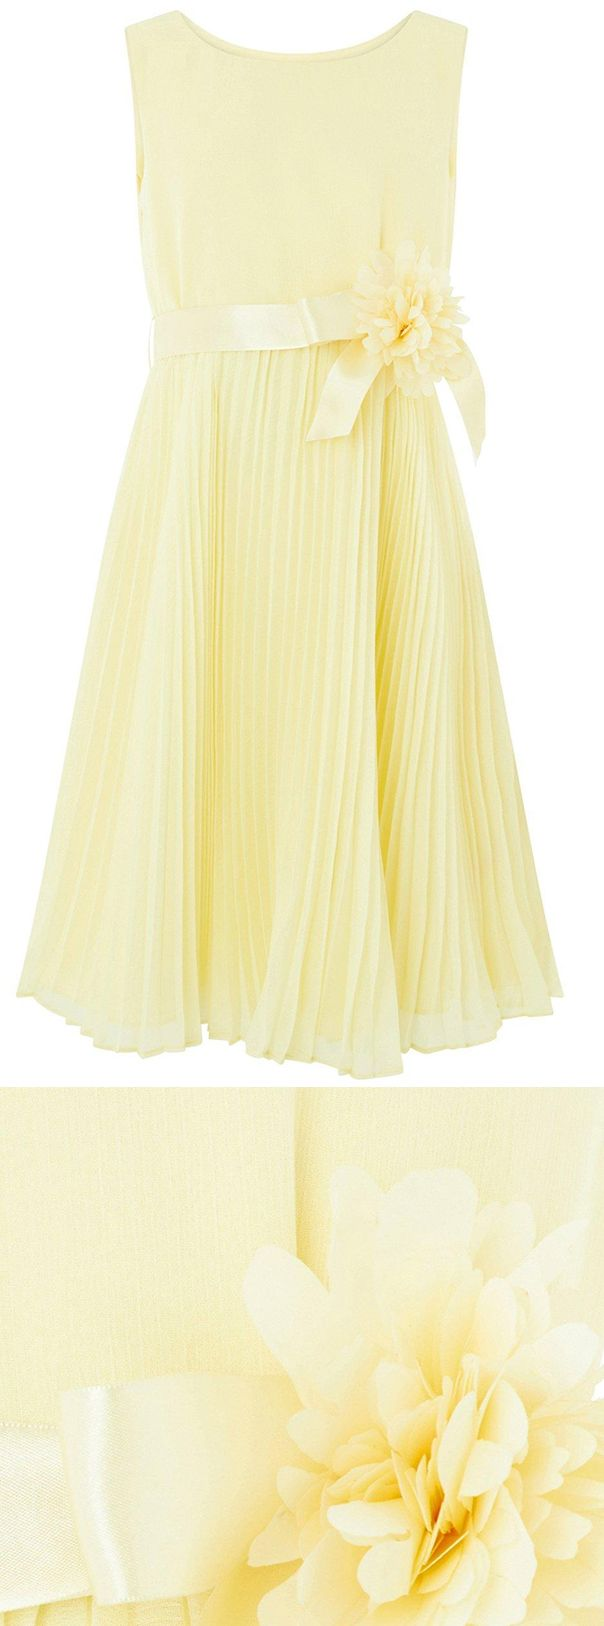 Monsoon Keita Dress in Yellow, sweet Flower Girls, young bridesmaids dress for a spring wedding or Easter wedding, Easter party dress, with long pleats skirt and big flower sash waist belt. Fashion, wedding ideas, wedding outfits inspiration. #flowergirls #bridesmaids #flowergirlsdresses #flowergirlsdress #yellowdress #weddingideas #weddinginspiration #springweddings #affiliatelink #monsoondress #pleateddress